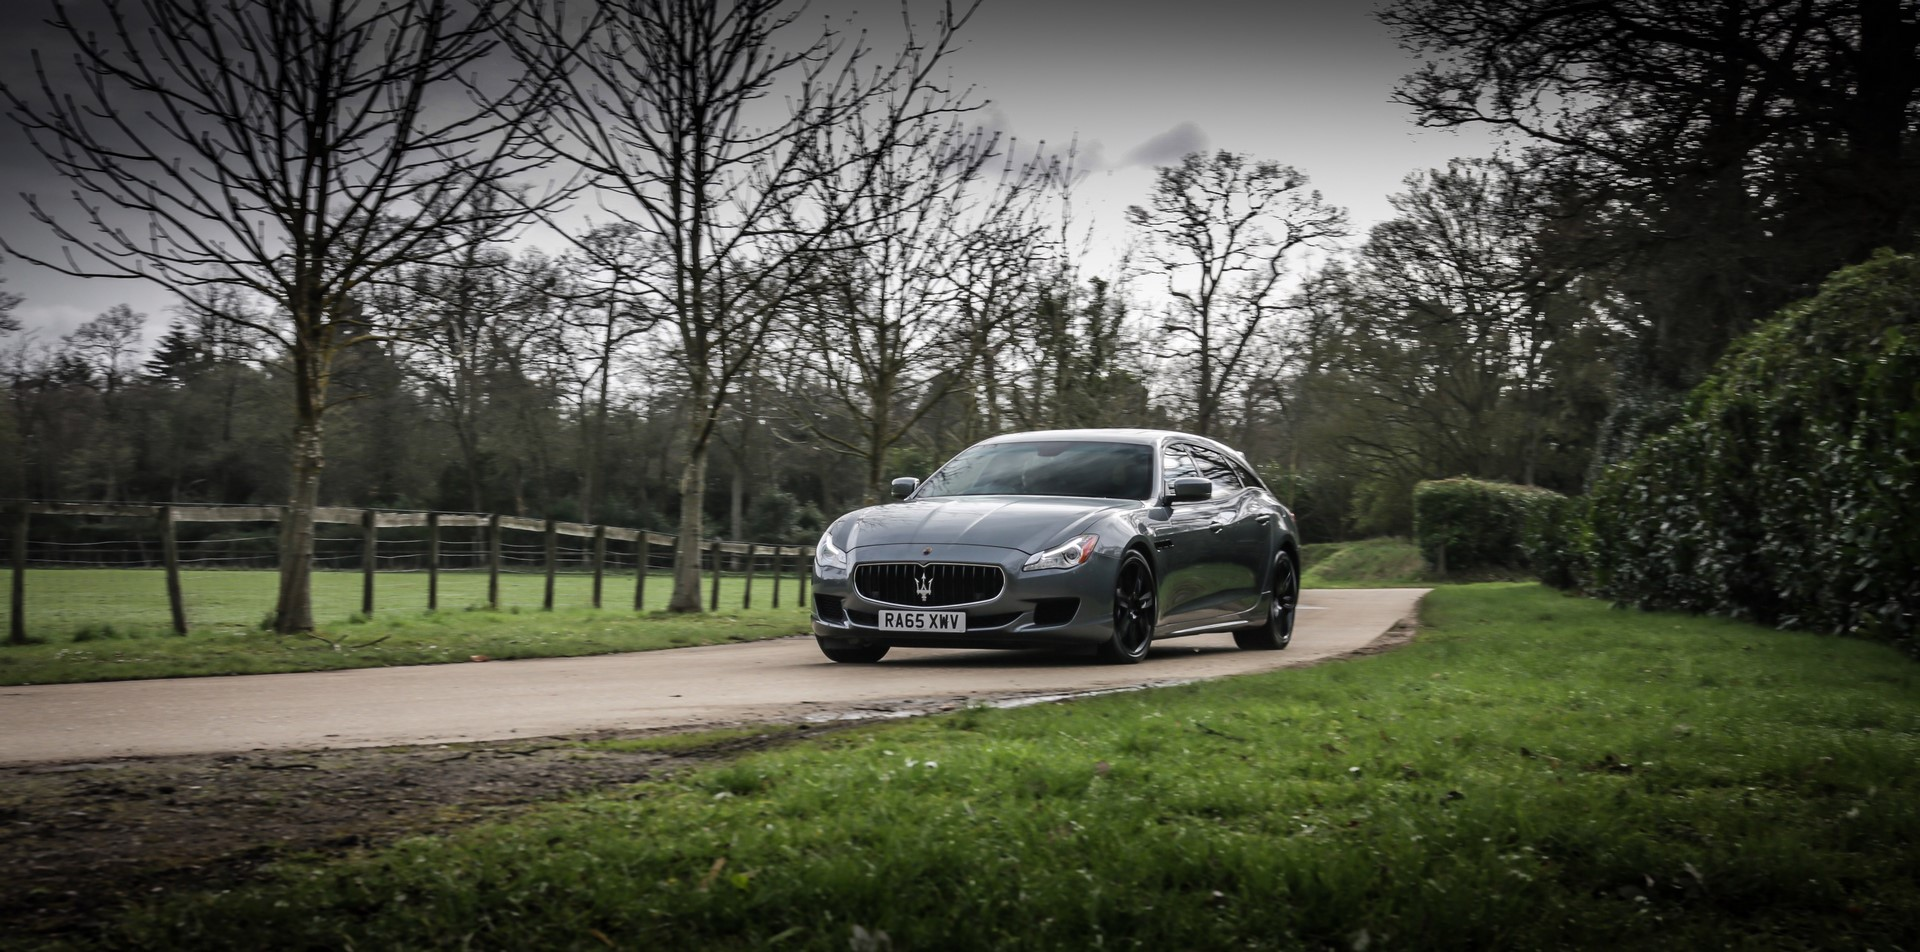 Maserati Quattroporte Shooting Brake (17)